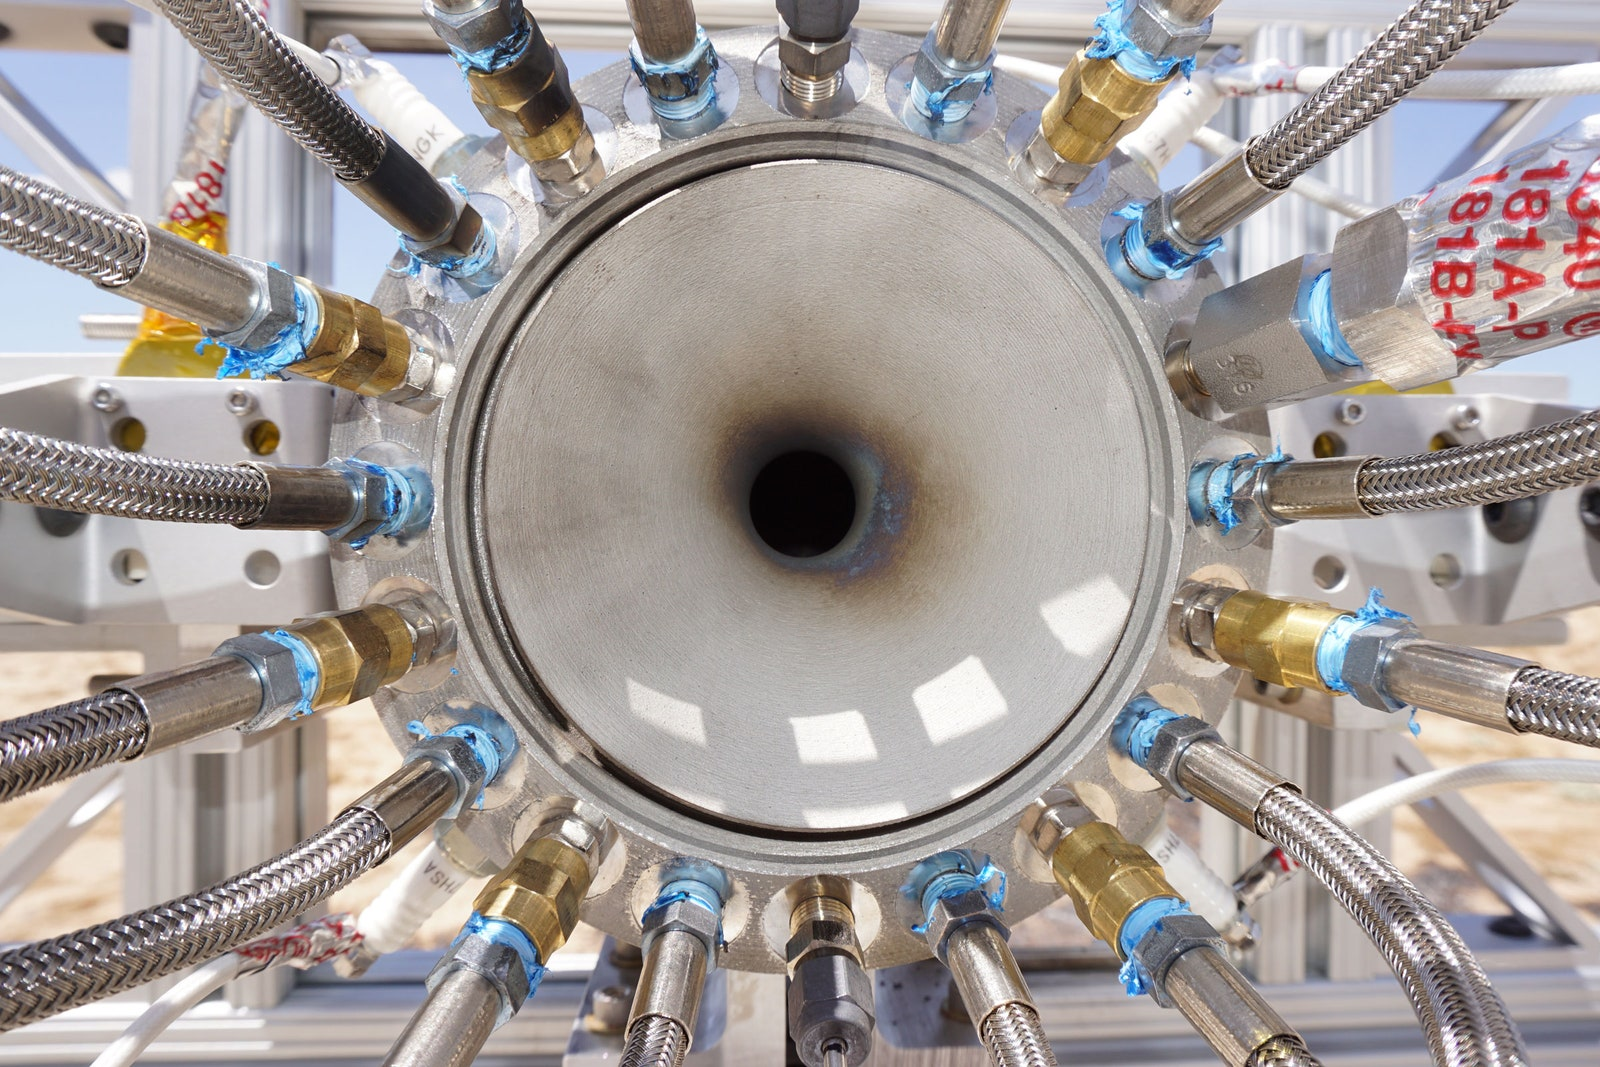 The air intake on Mountain Aerospace Research Solution's Fenris engine after its first hotfire last July. The lines around the cone feed kerosene and gaseous oxygen into a combustion chamber, where it is mixed with the air and ignited.